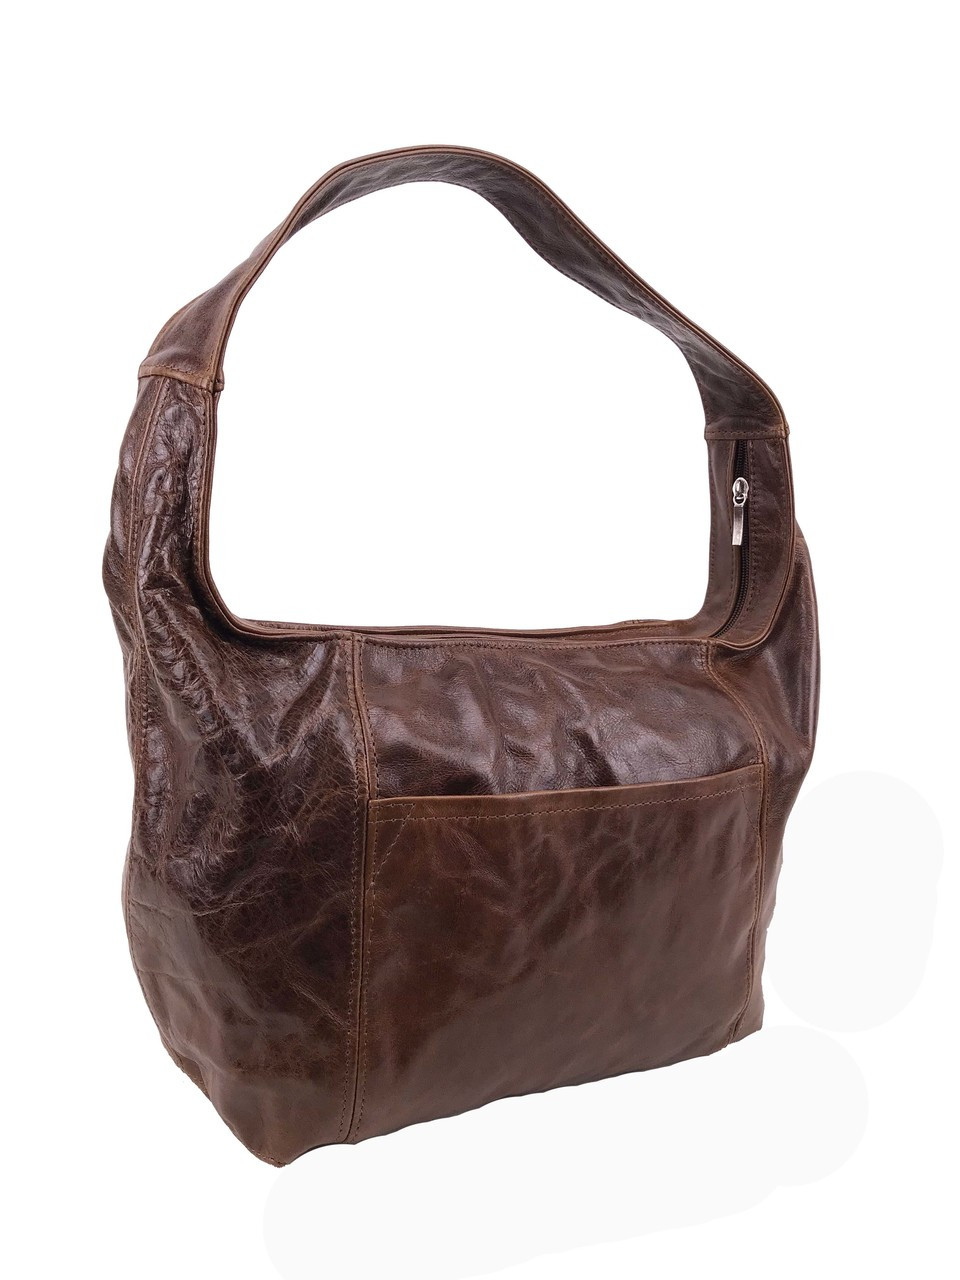 f29d895429 Distressed Brown Leather Hobo Bag with Pockets